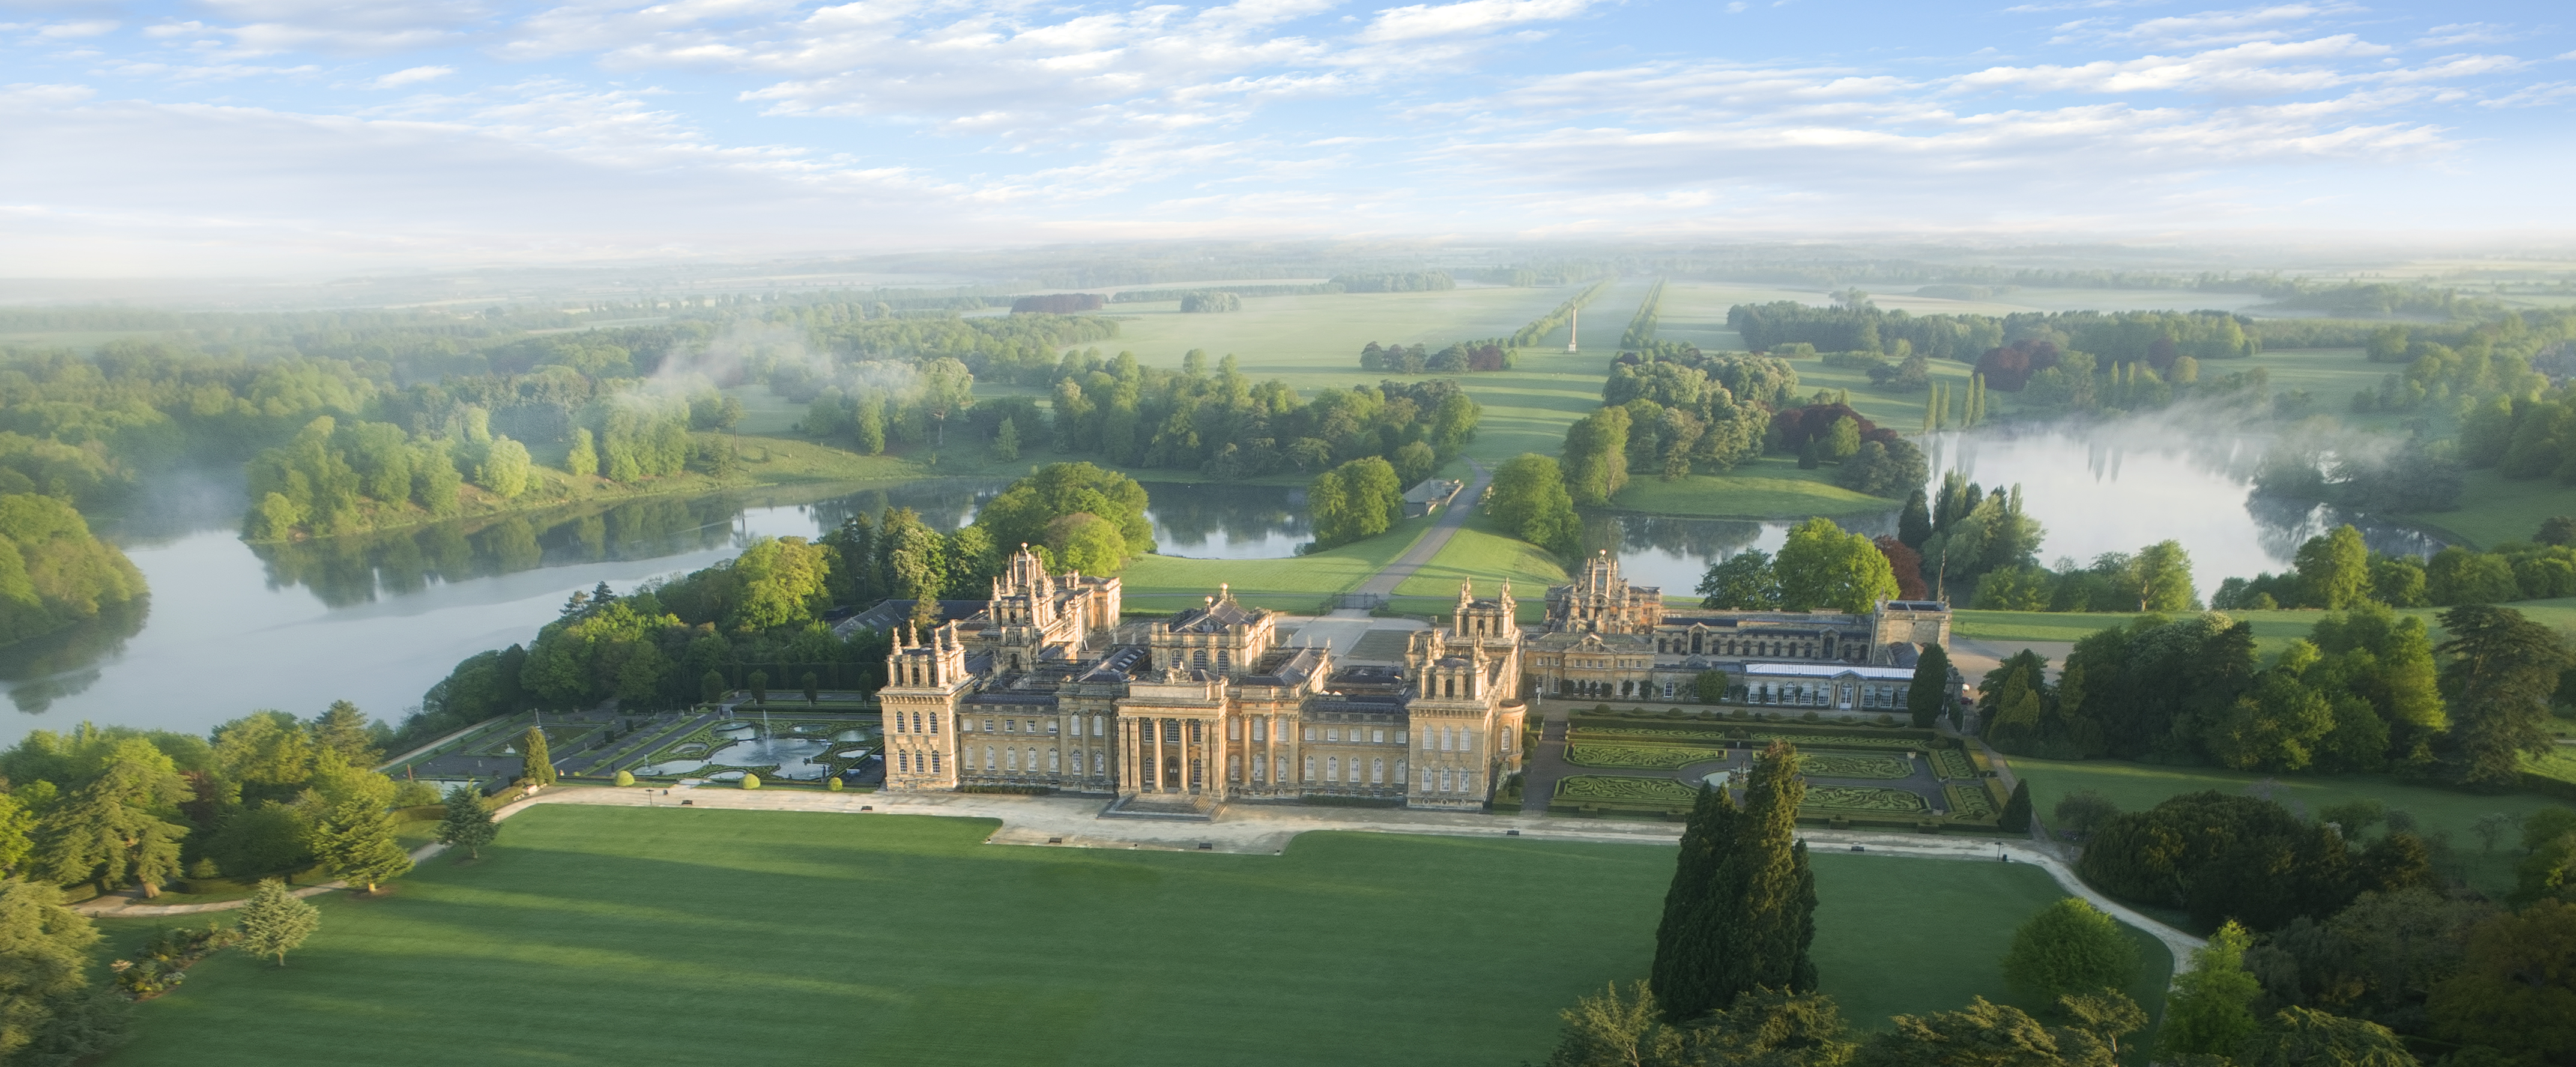 Aerial View Of 18th Century Blenheim Palace And Grounds Garden Designed By Capability Brown